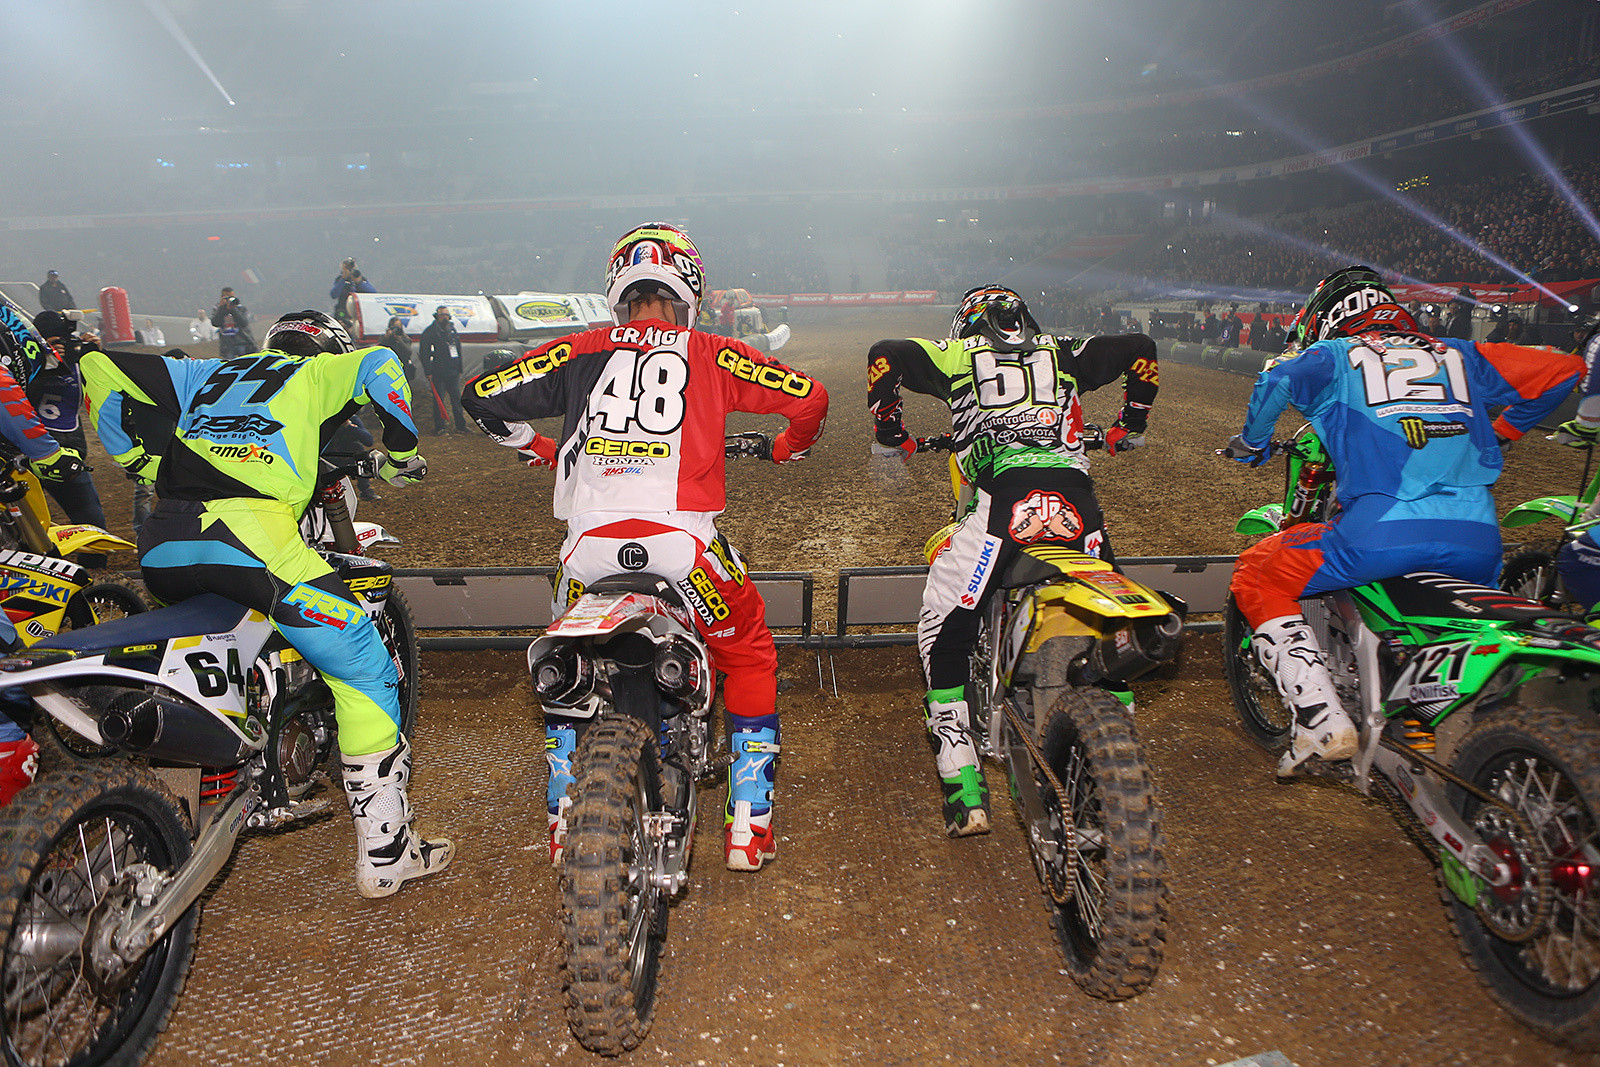 450 Heat Race One - Photo Gallery: Paris-Lille Supercross, Day 2 - Motocross Pictures - Vital MX